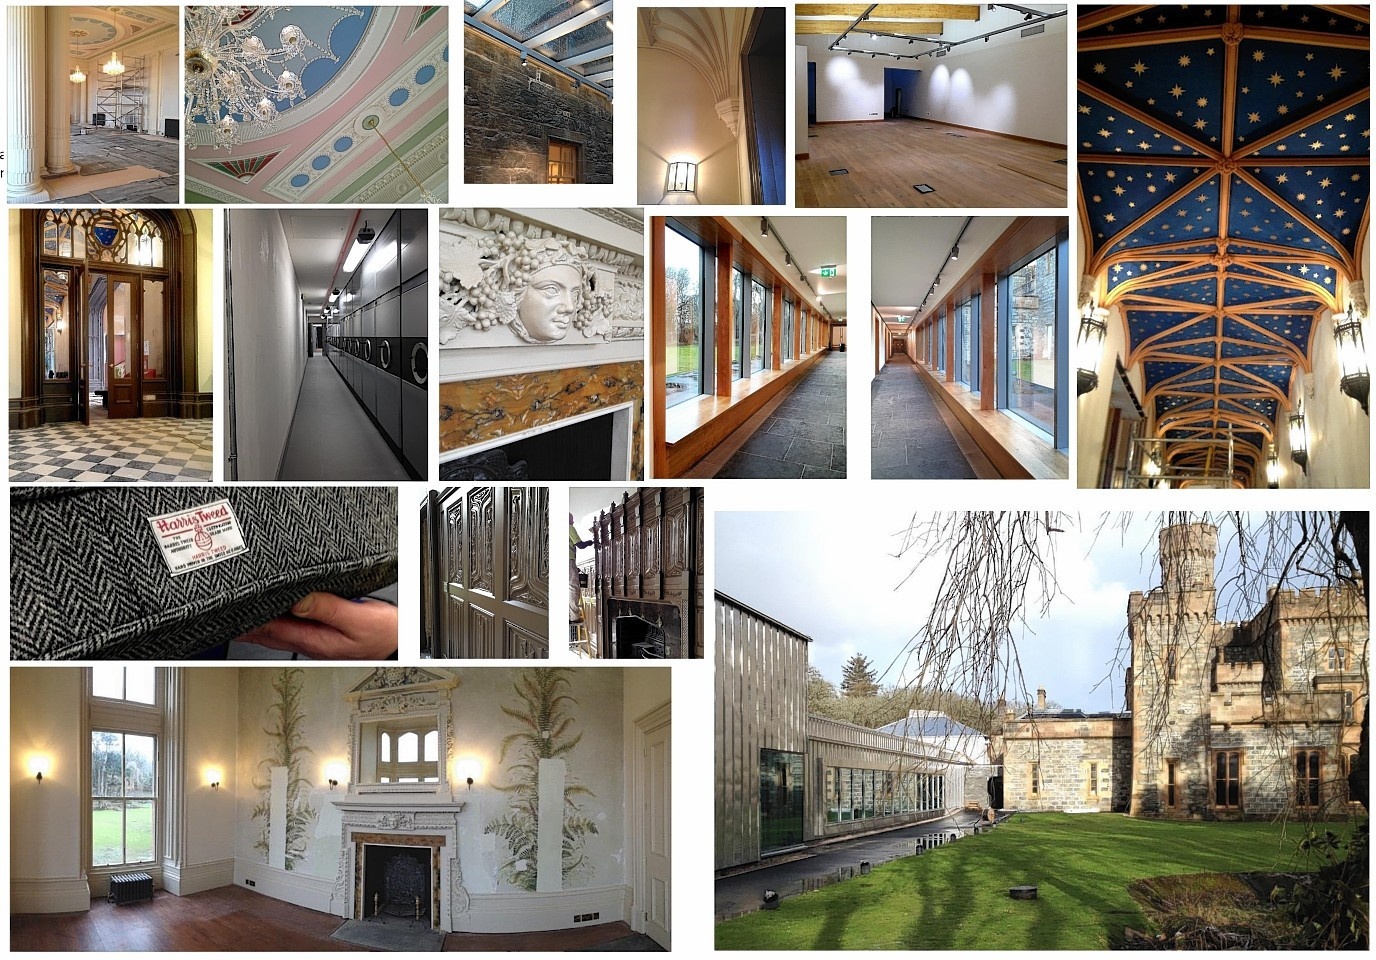 Interior shots of the renovated Lews Castle